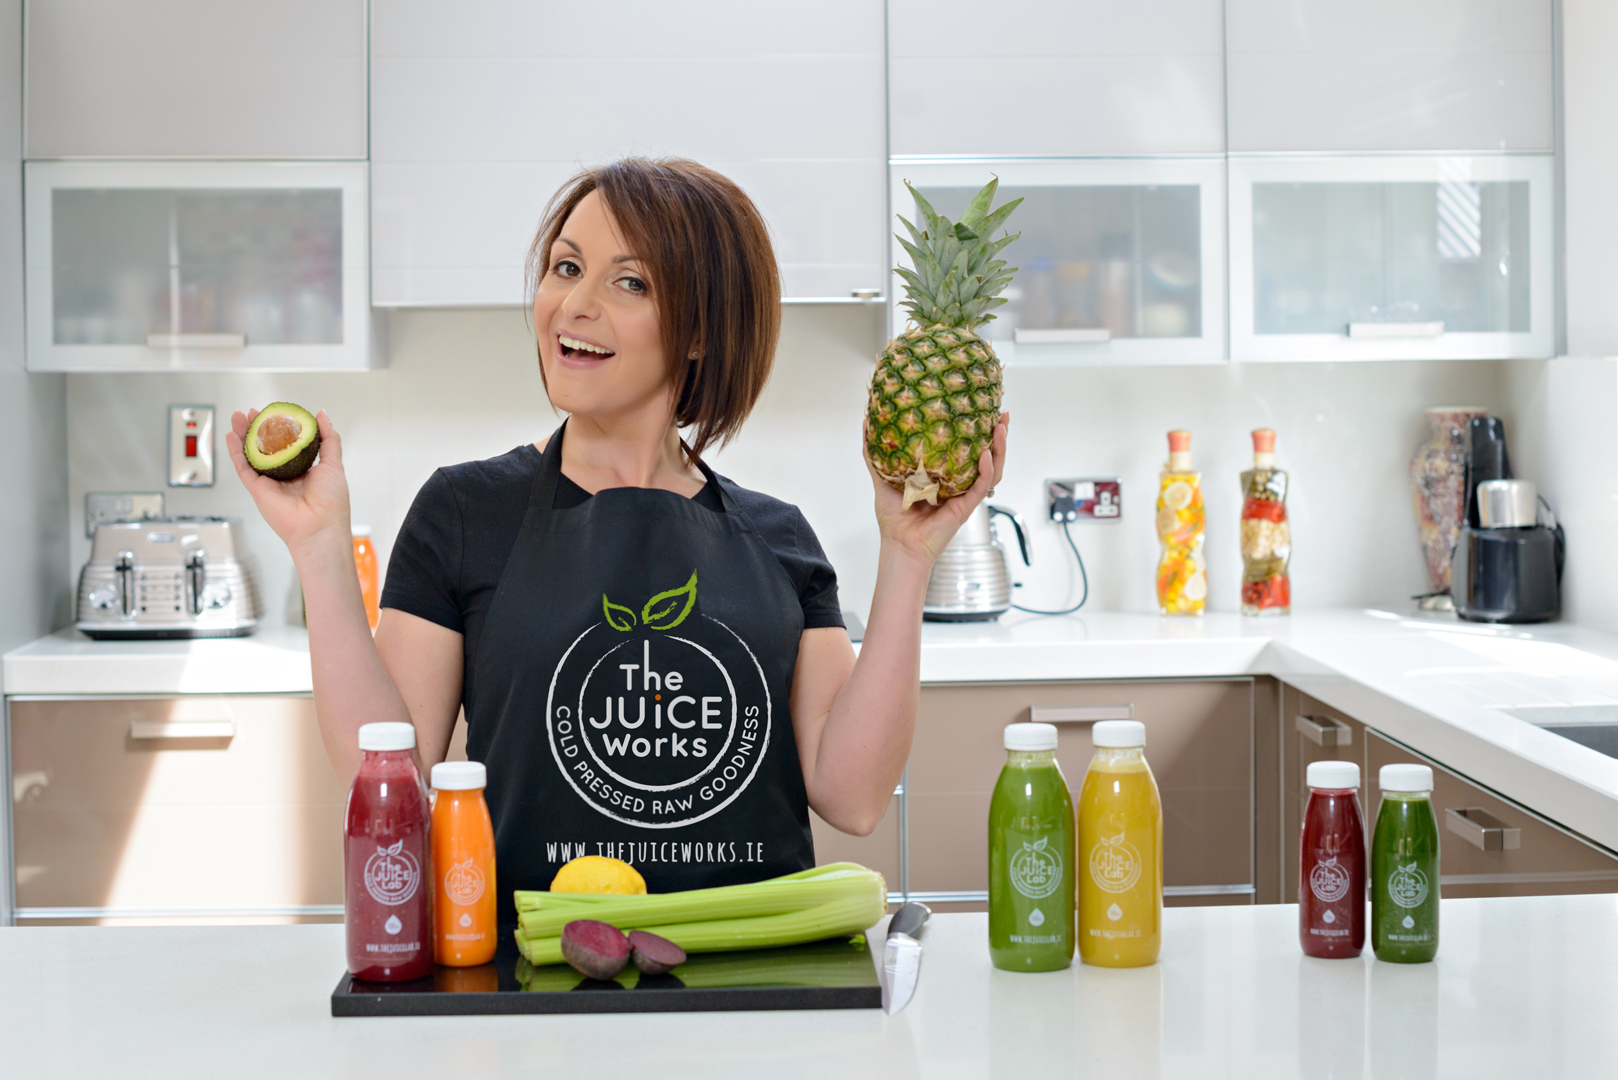 #MakeAFuss: 'Business experts tell me I'm mental,' says raw juice producer